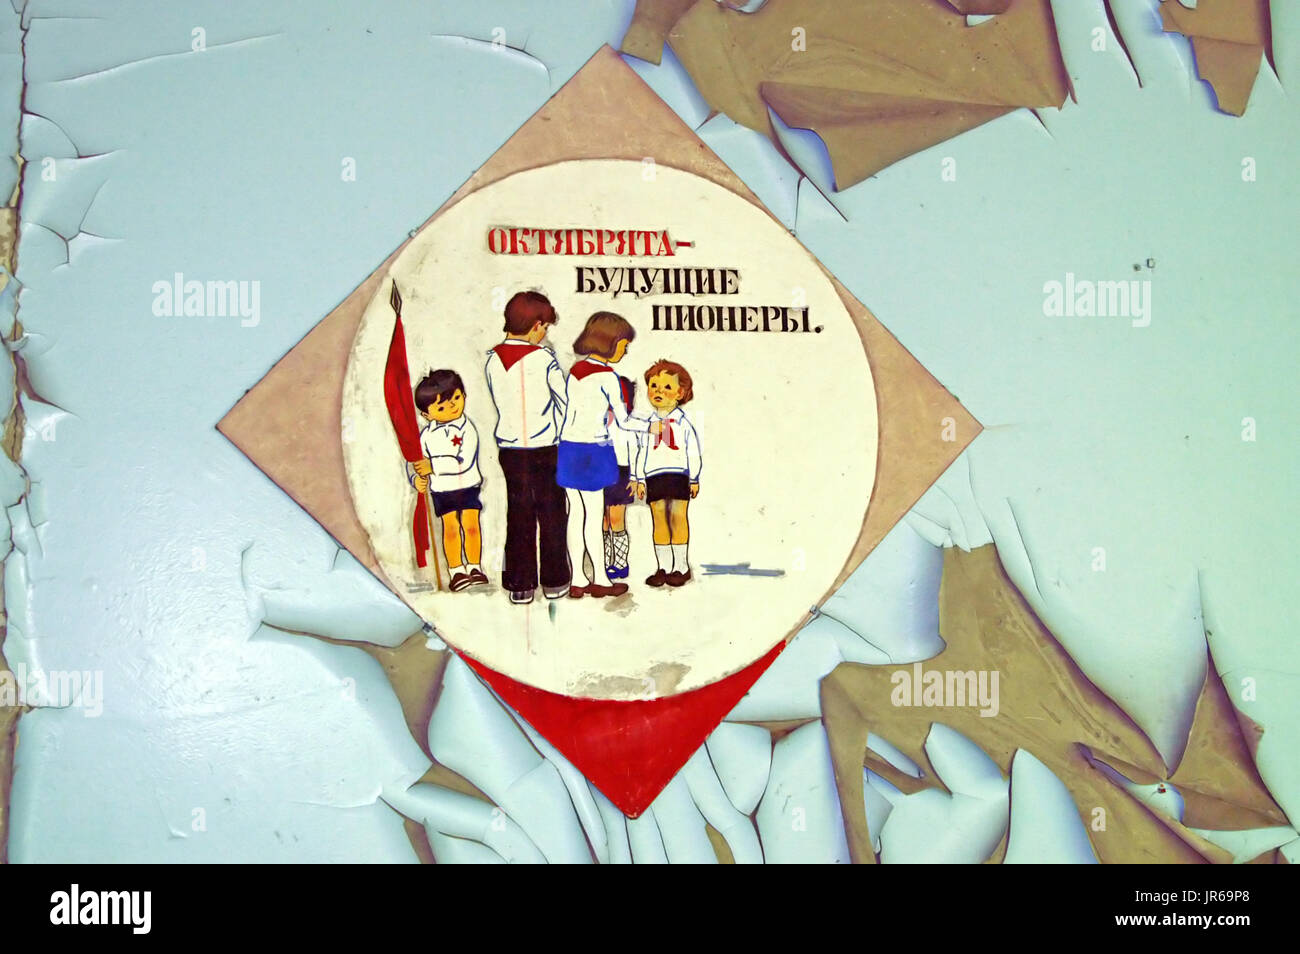 CHORNOBYL, UKRAINE -JULY 15, 2007: Old communist poster in abandoned building in school in Chernobyl Zone. Chornobyl Disaster - Stock Image